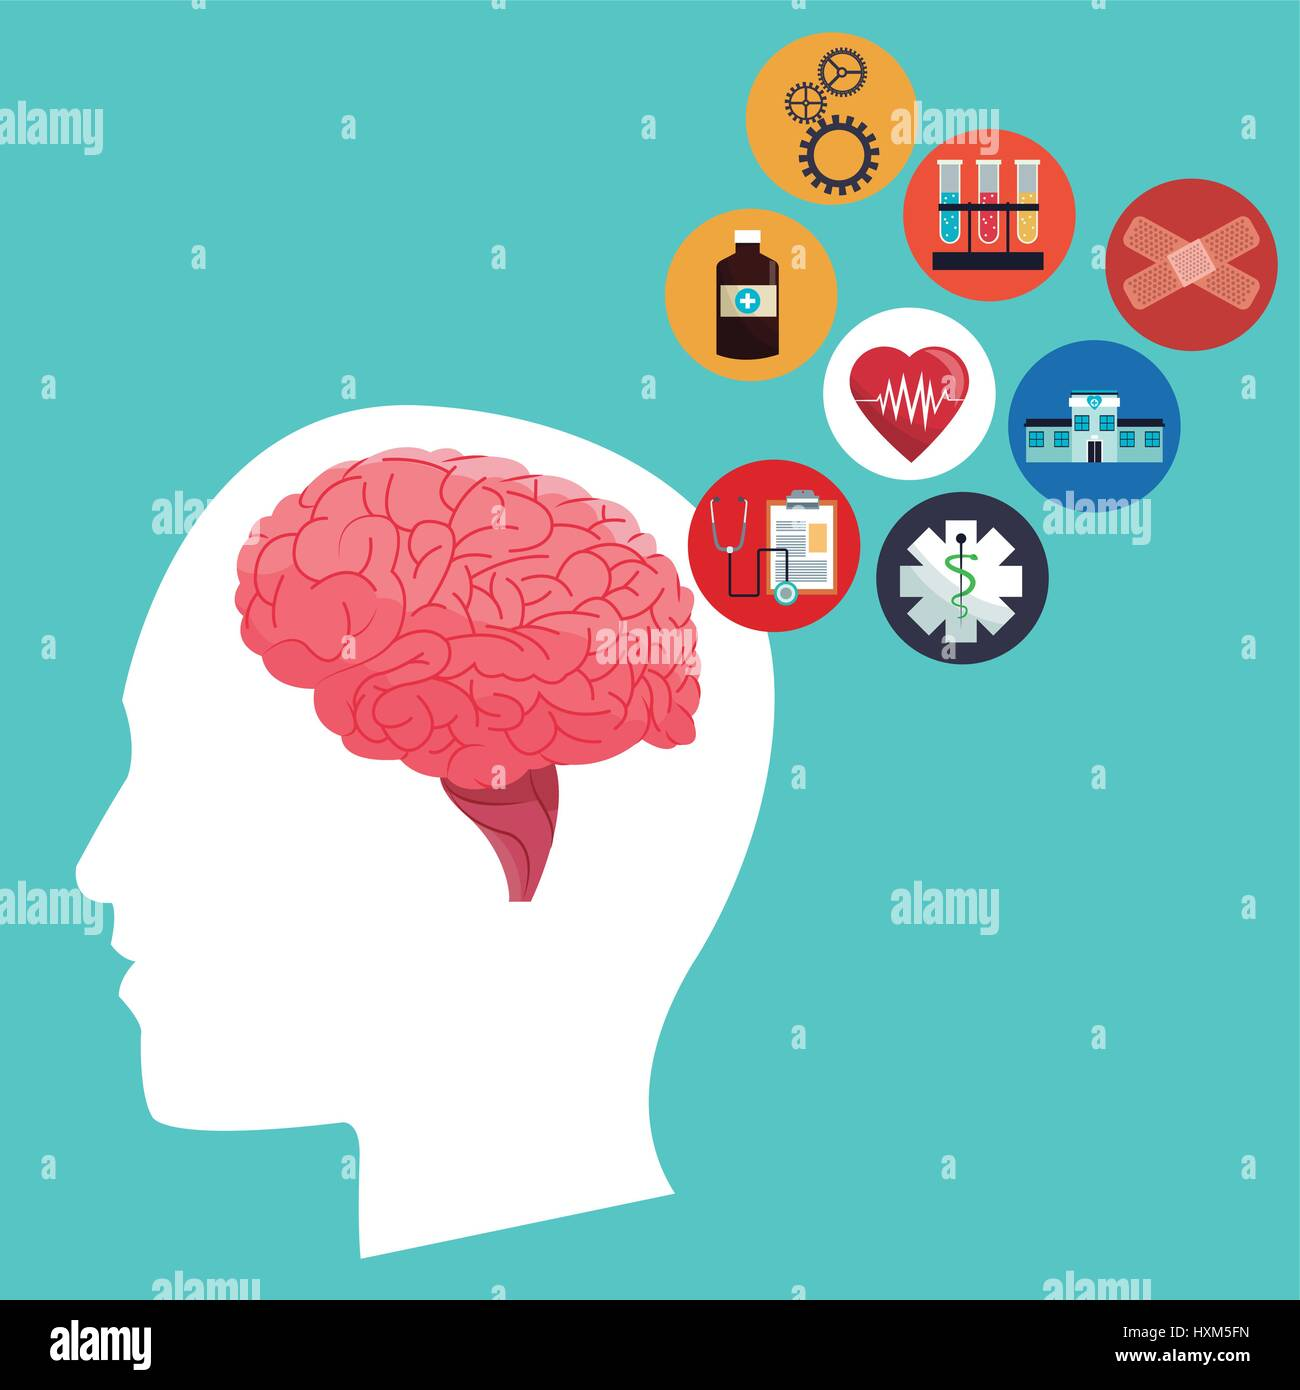 human head brain healthcare medical icons - Stock Image